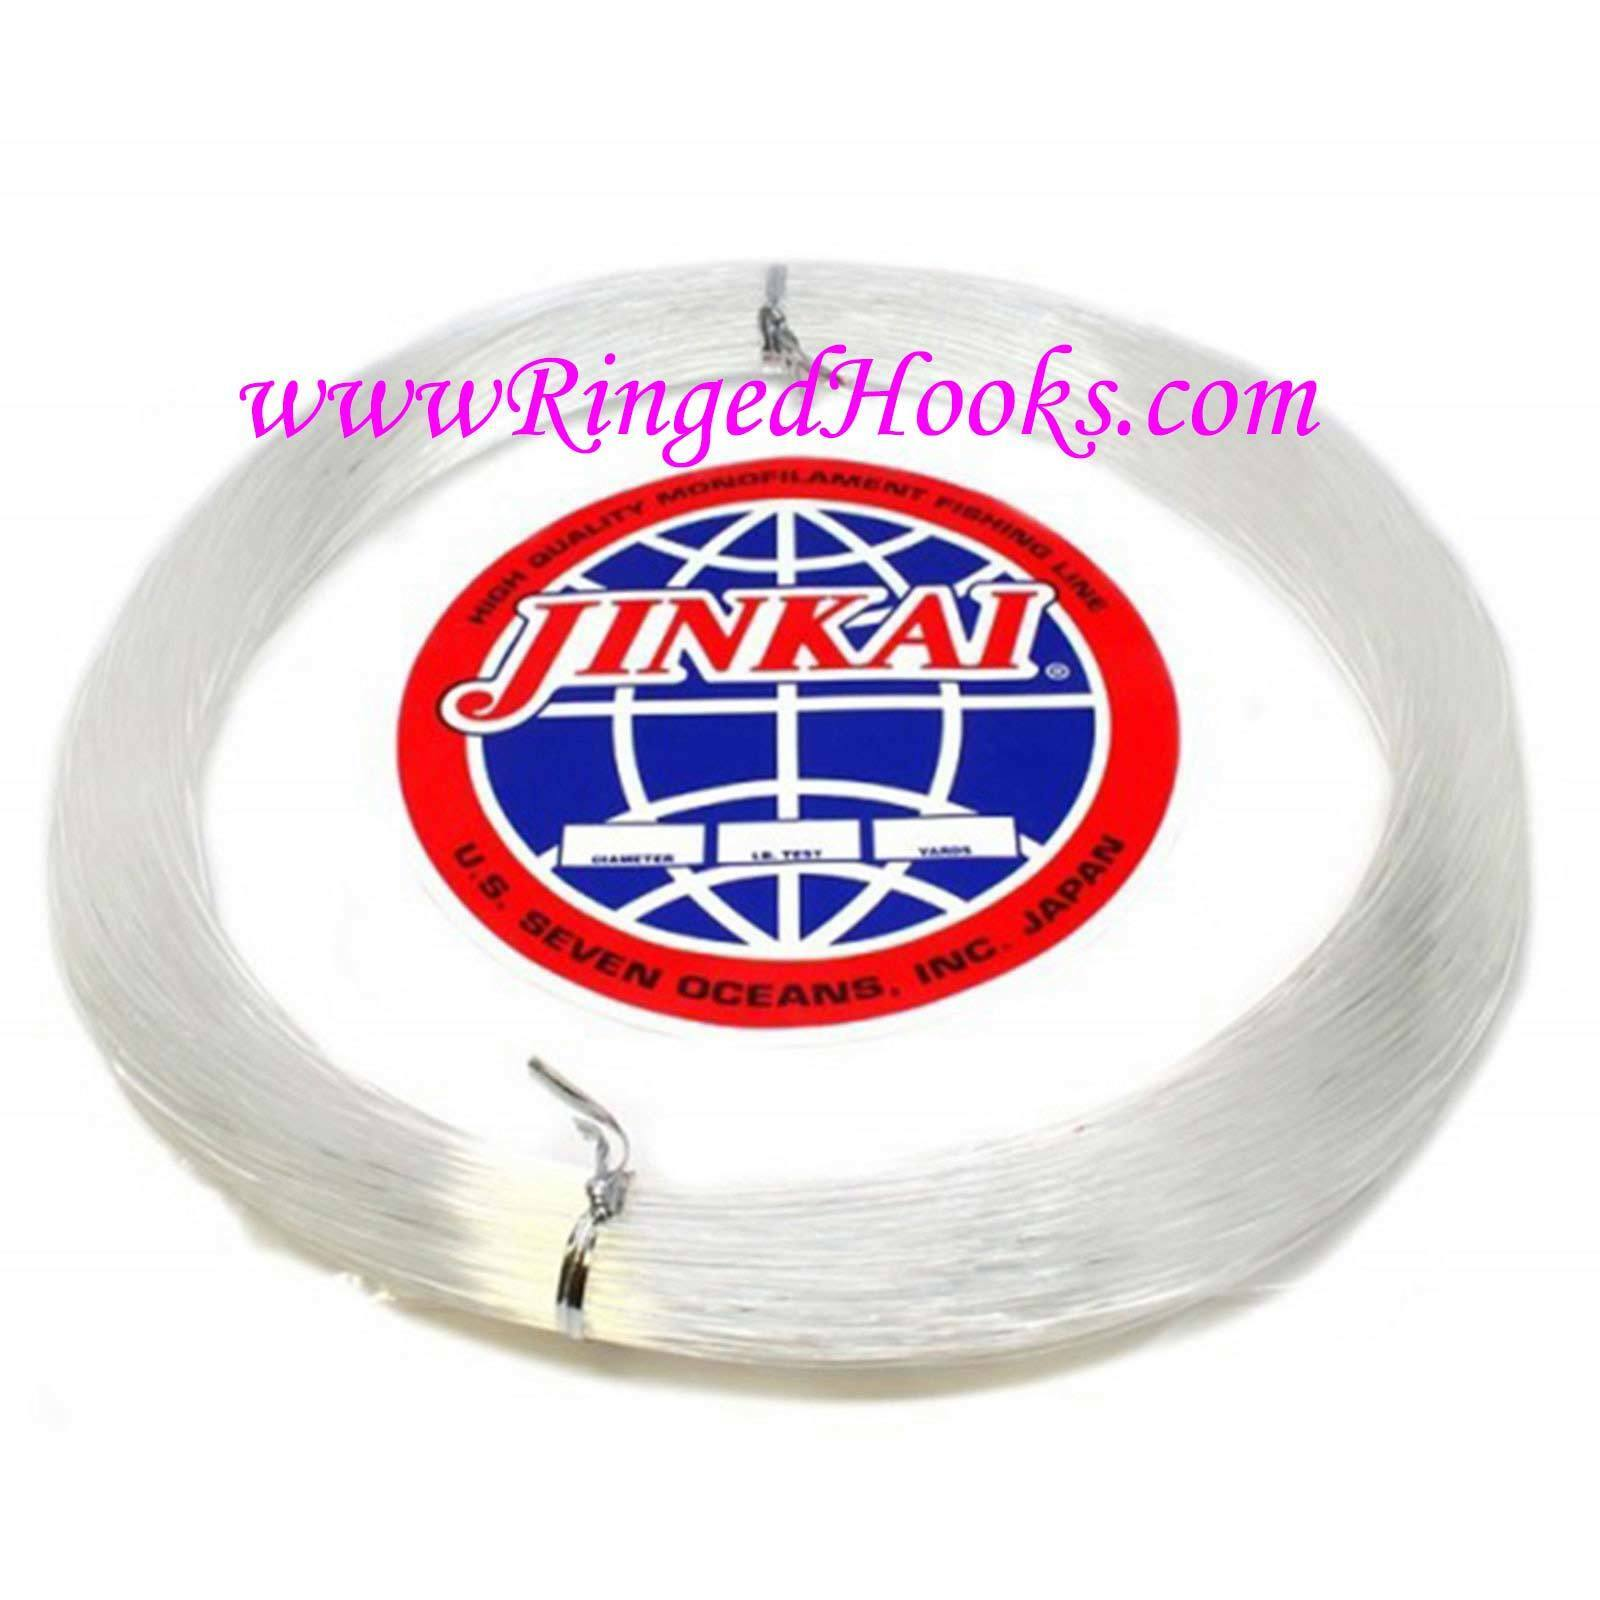 Jinkai Monofiliment leader - CLEAR - 50 yd. Coil - 600 lb. Test - 2.25 mm Dia. -